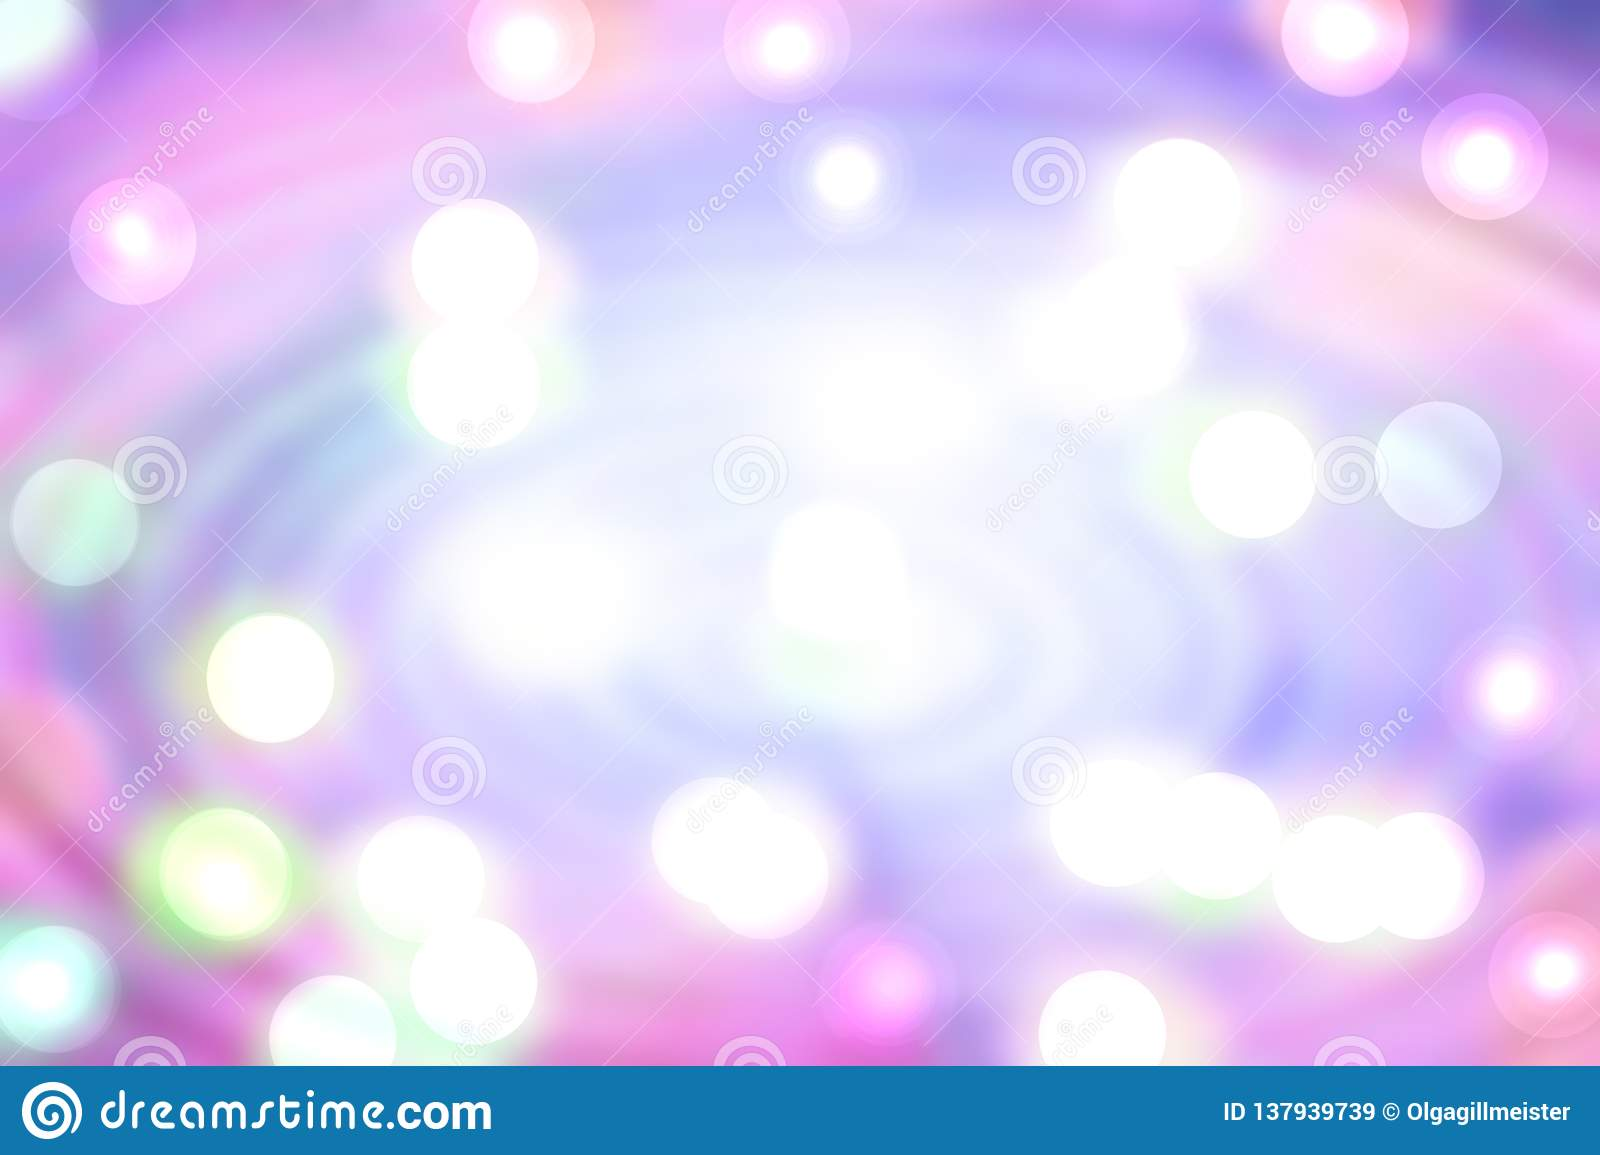 Abstract pink radial background. Colorful magic radial composition with white bokeh circular lights. Beautiful pastel colored